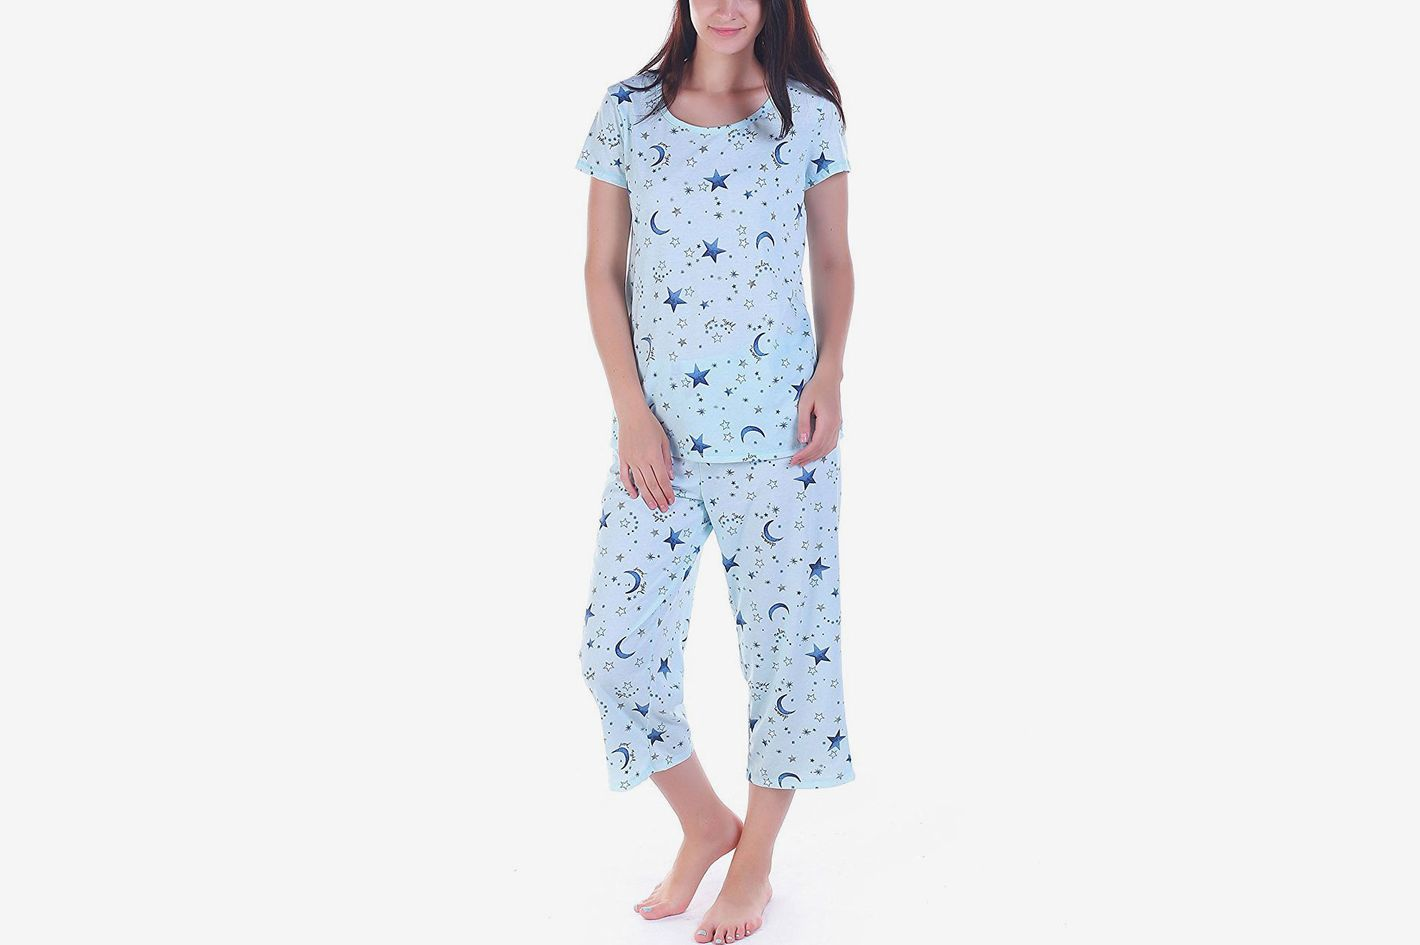 4894c3174a Best capri pajama set. Amoy madrola Women Cotton Sleepwear